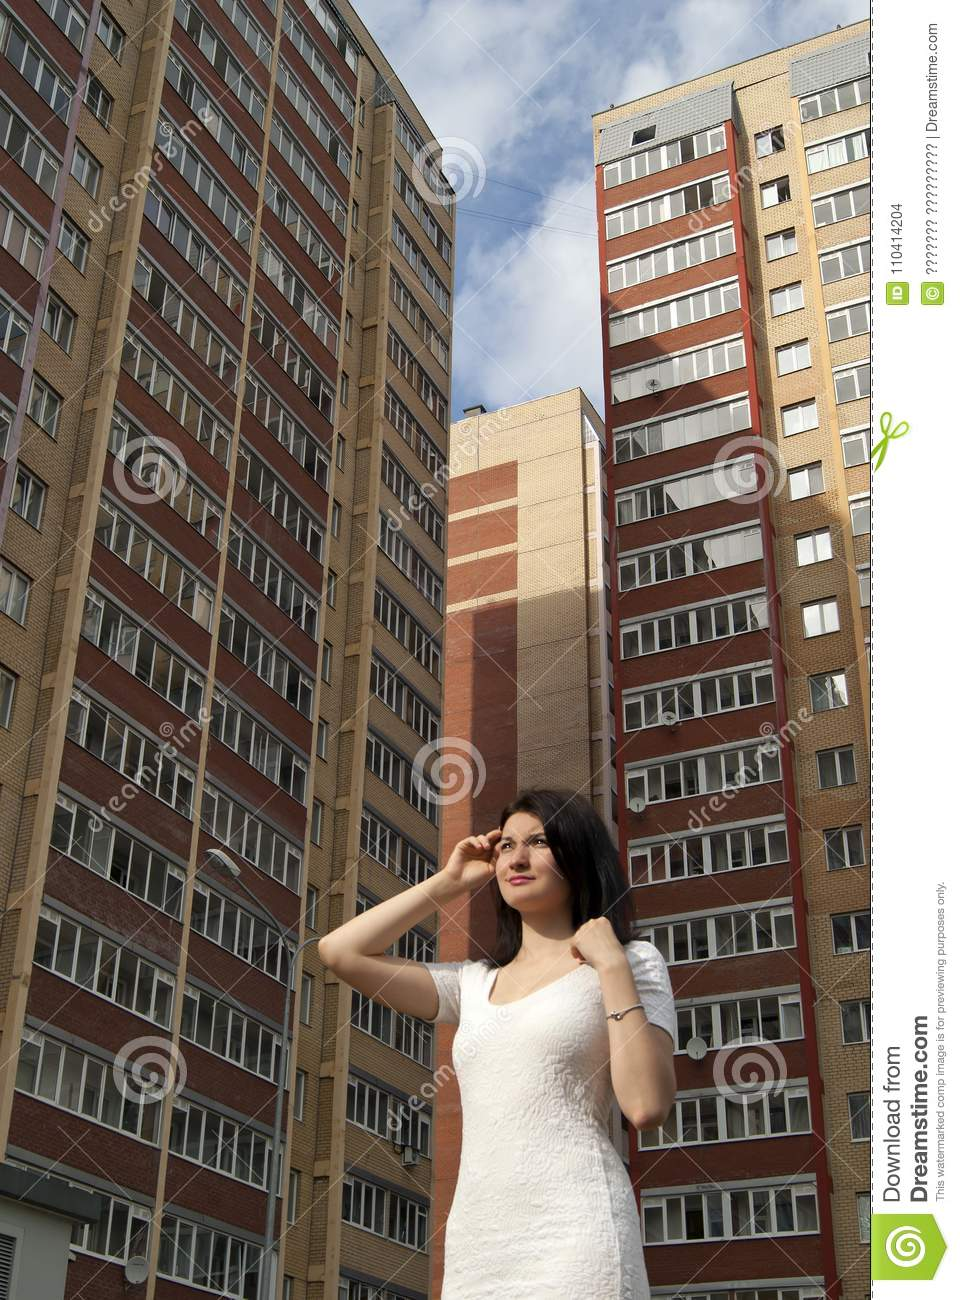 girl on the background of multi-storey buildings